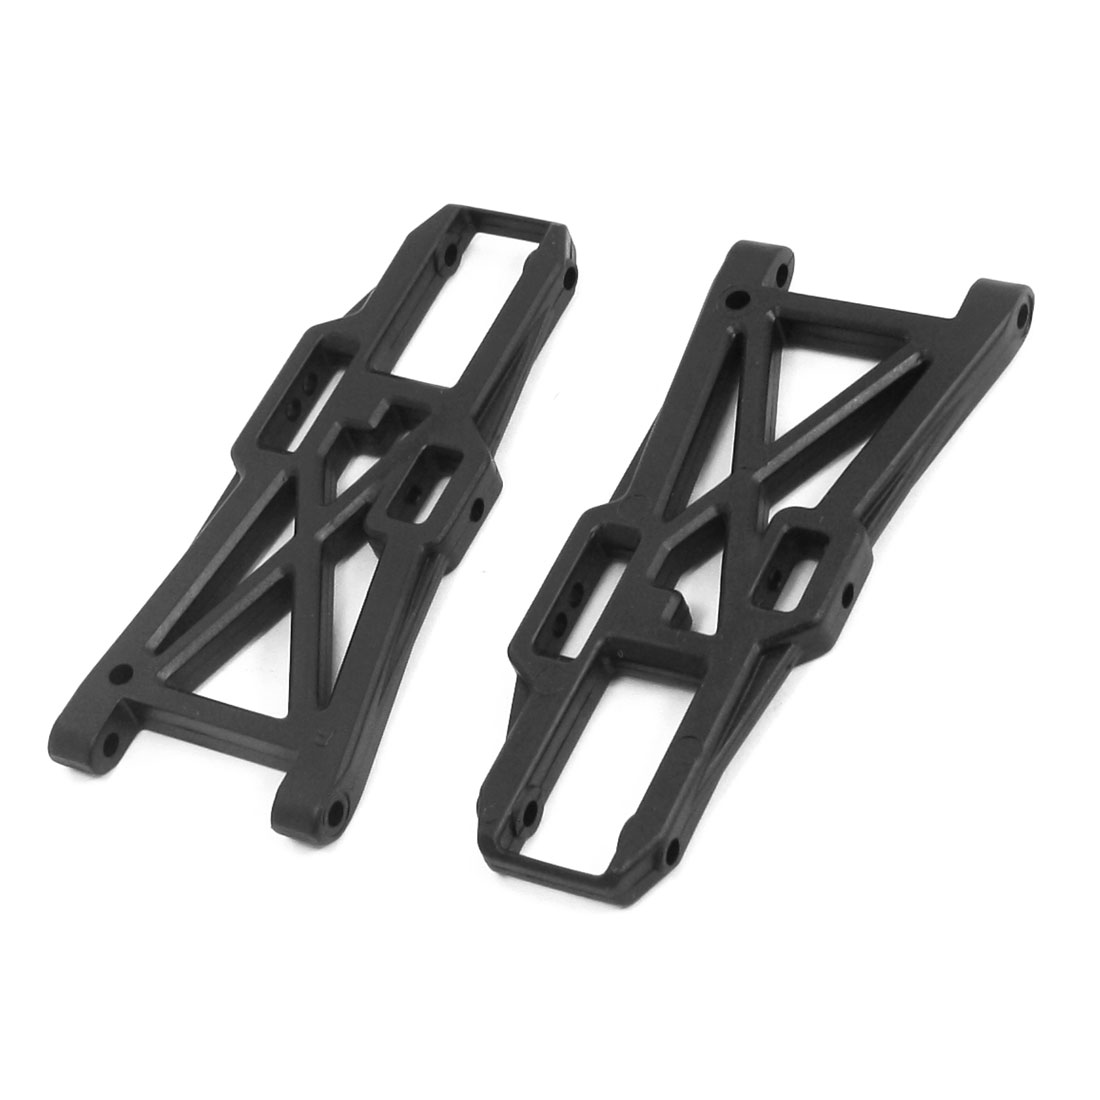 2Pcs 06011 Front Lower Suspension Arms for RC 1/10 94107 Model Car